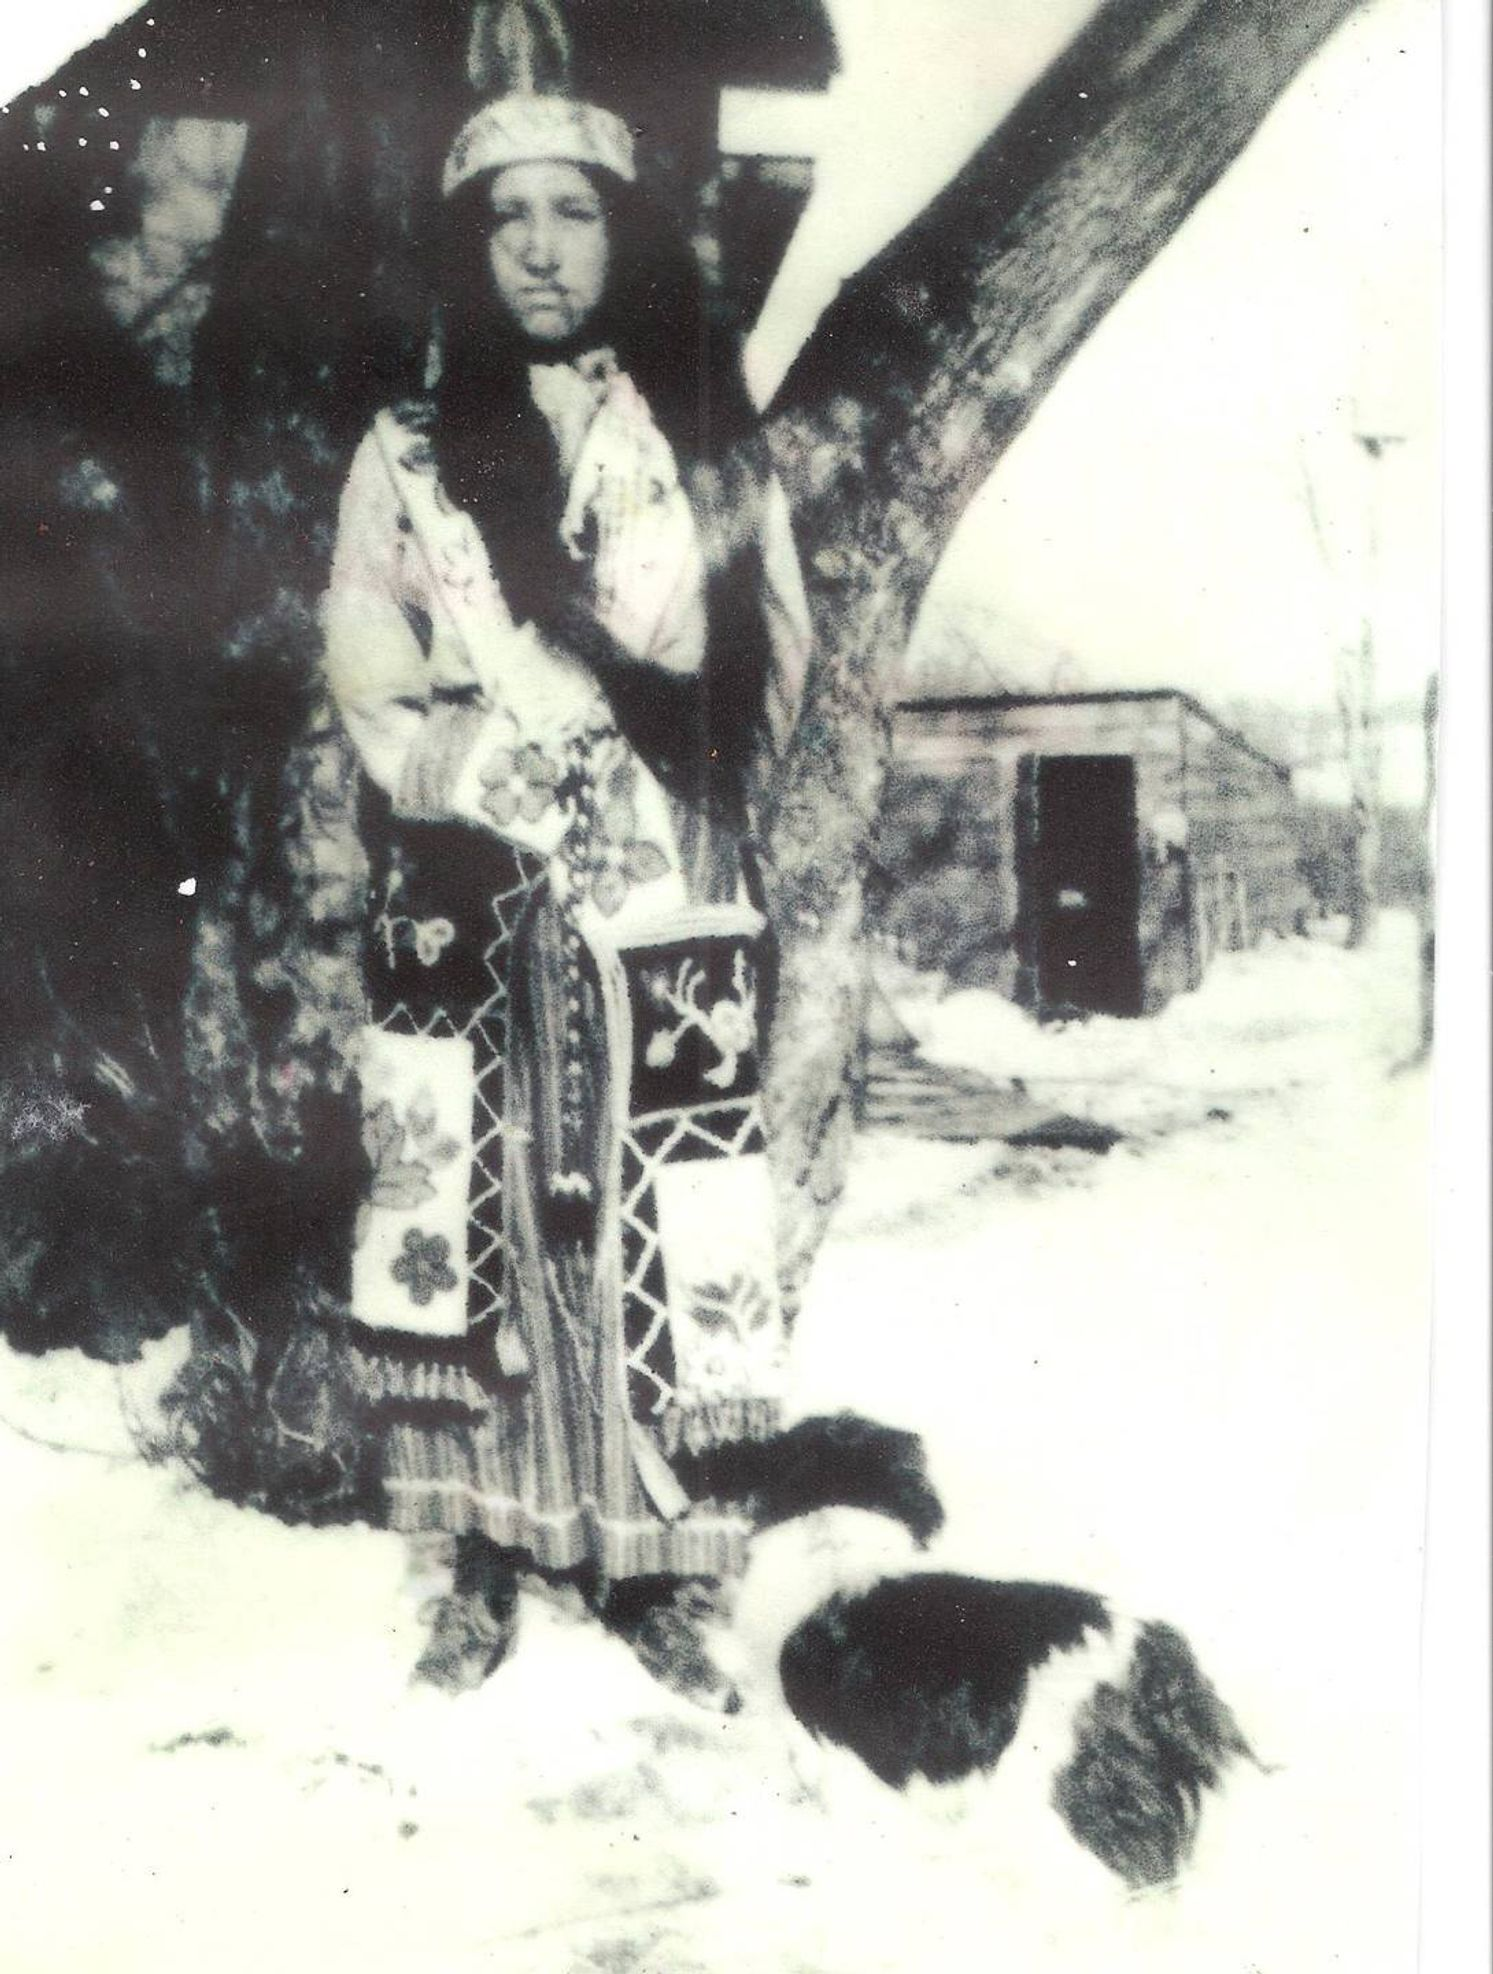 Girl dressed in traditional Ojibwe outfit standing on snow